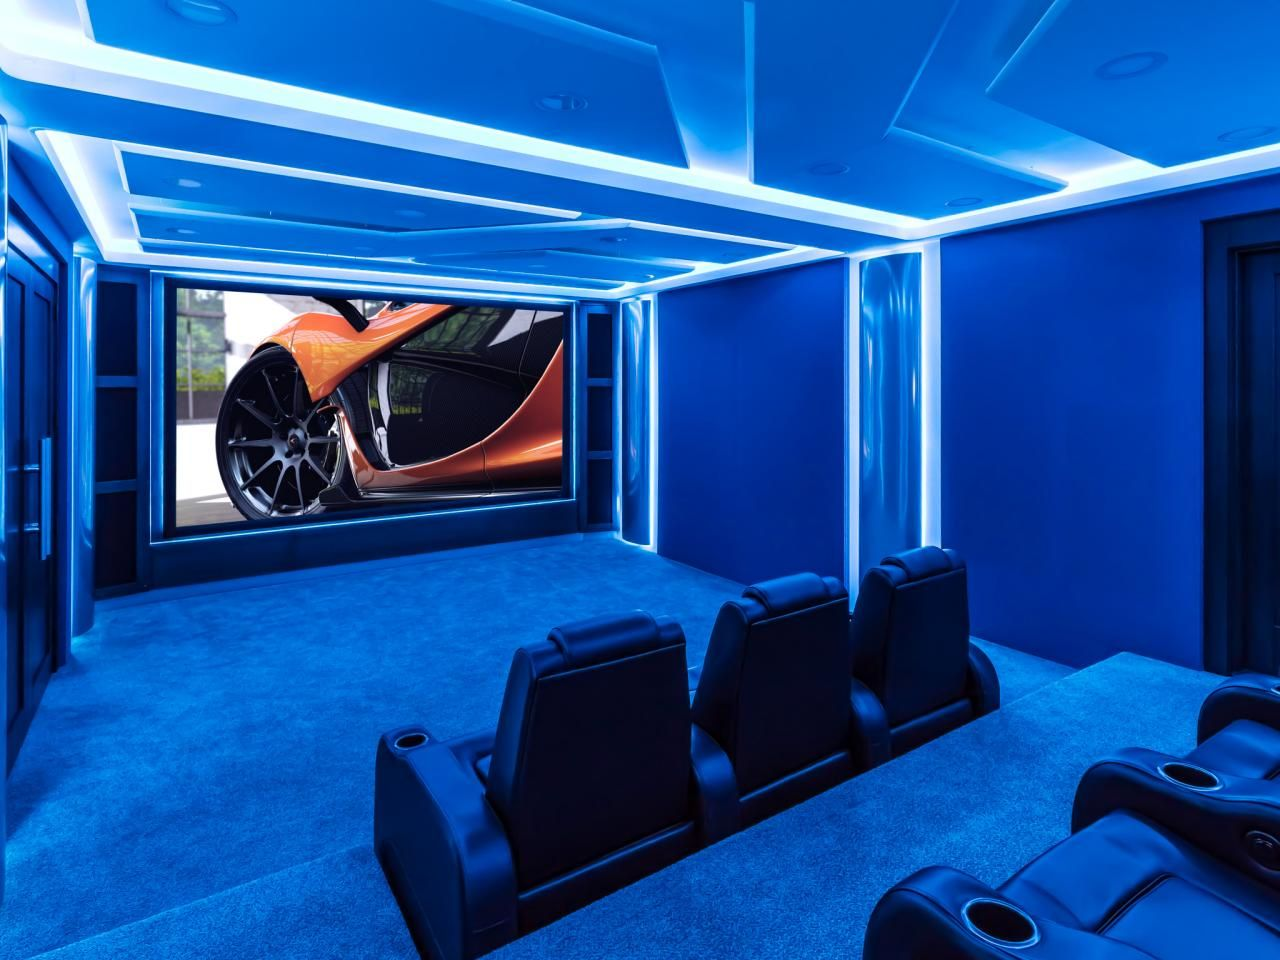 Led Lighting In Home Theater